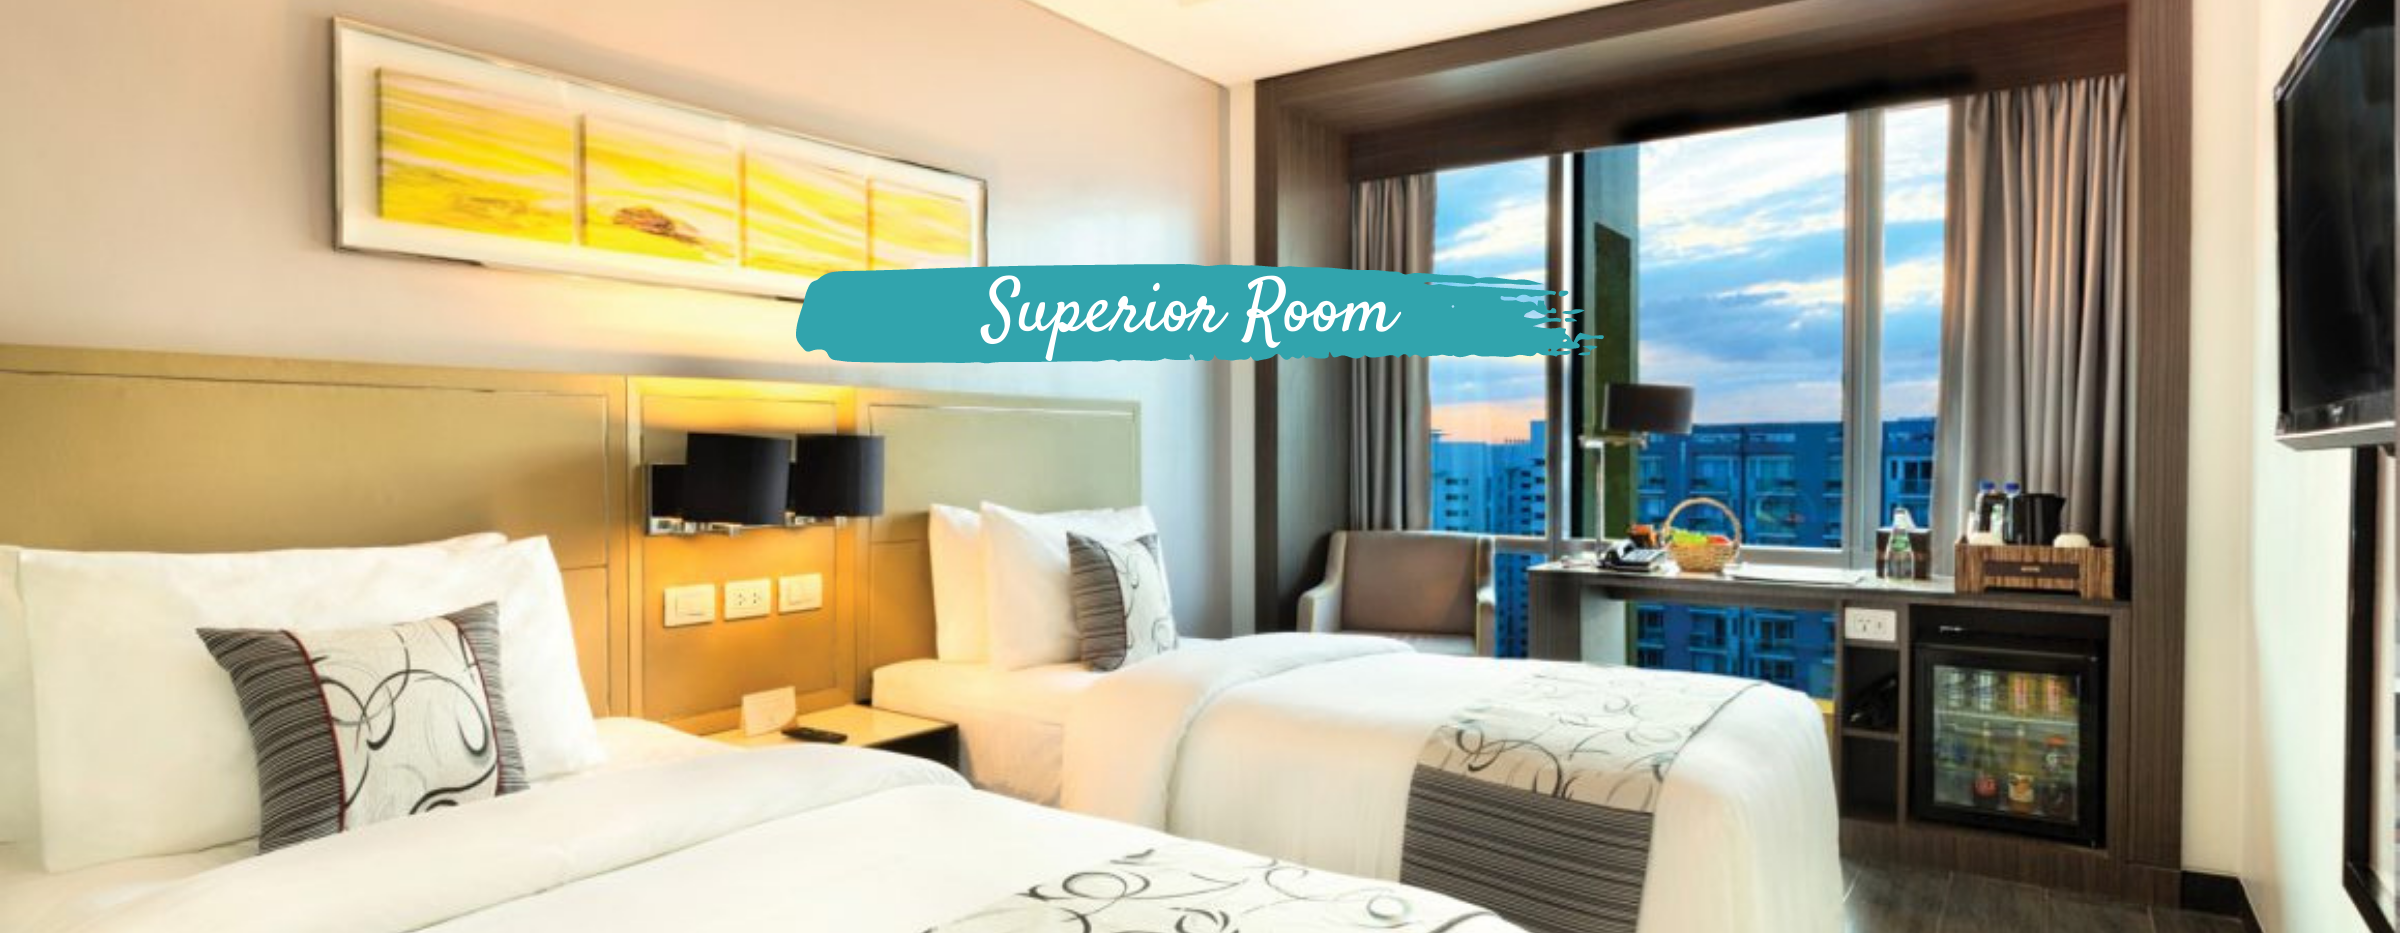 Belmont Hotel Superior Room    LAX to MNL Philippine Airlines + Hotel Quarantine Package